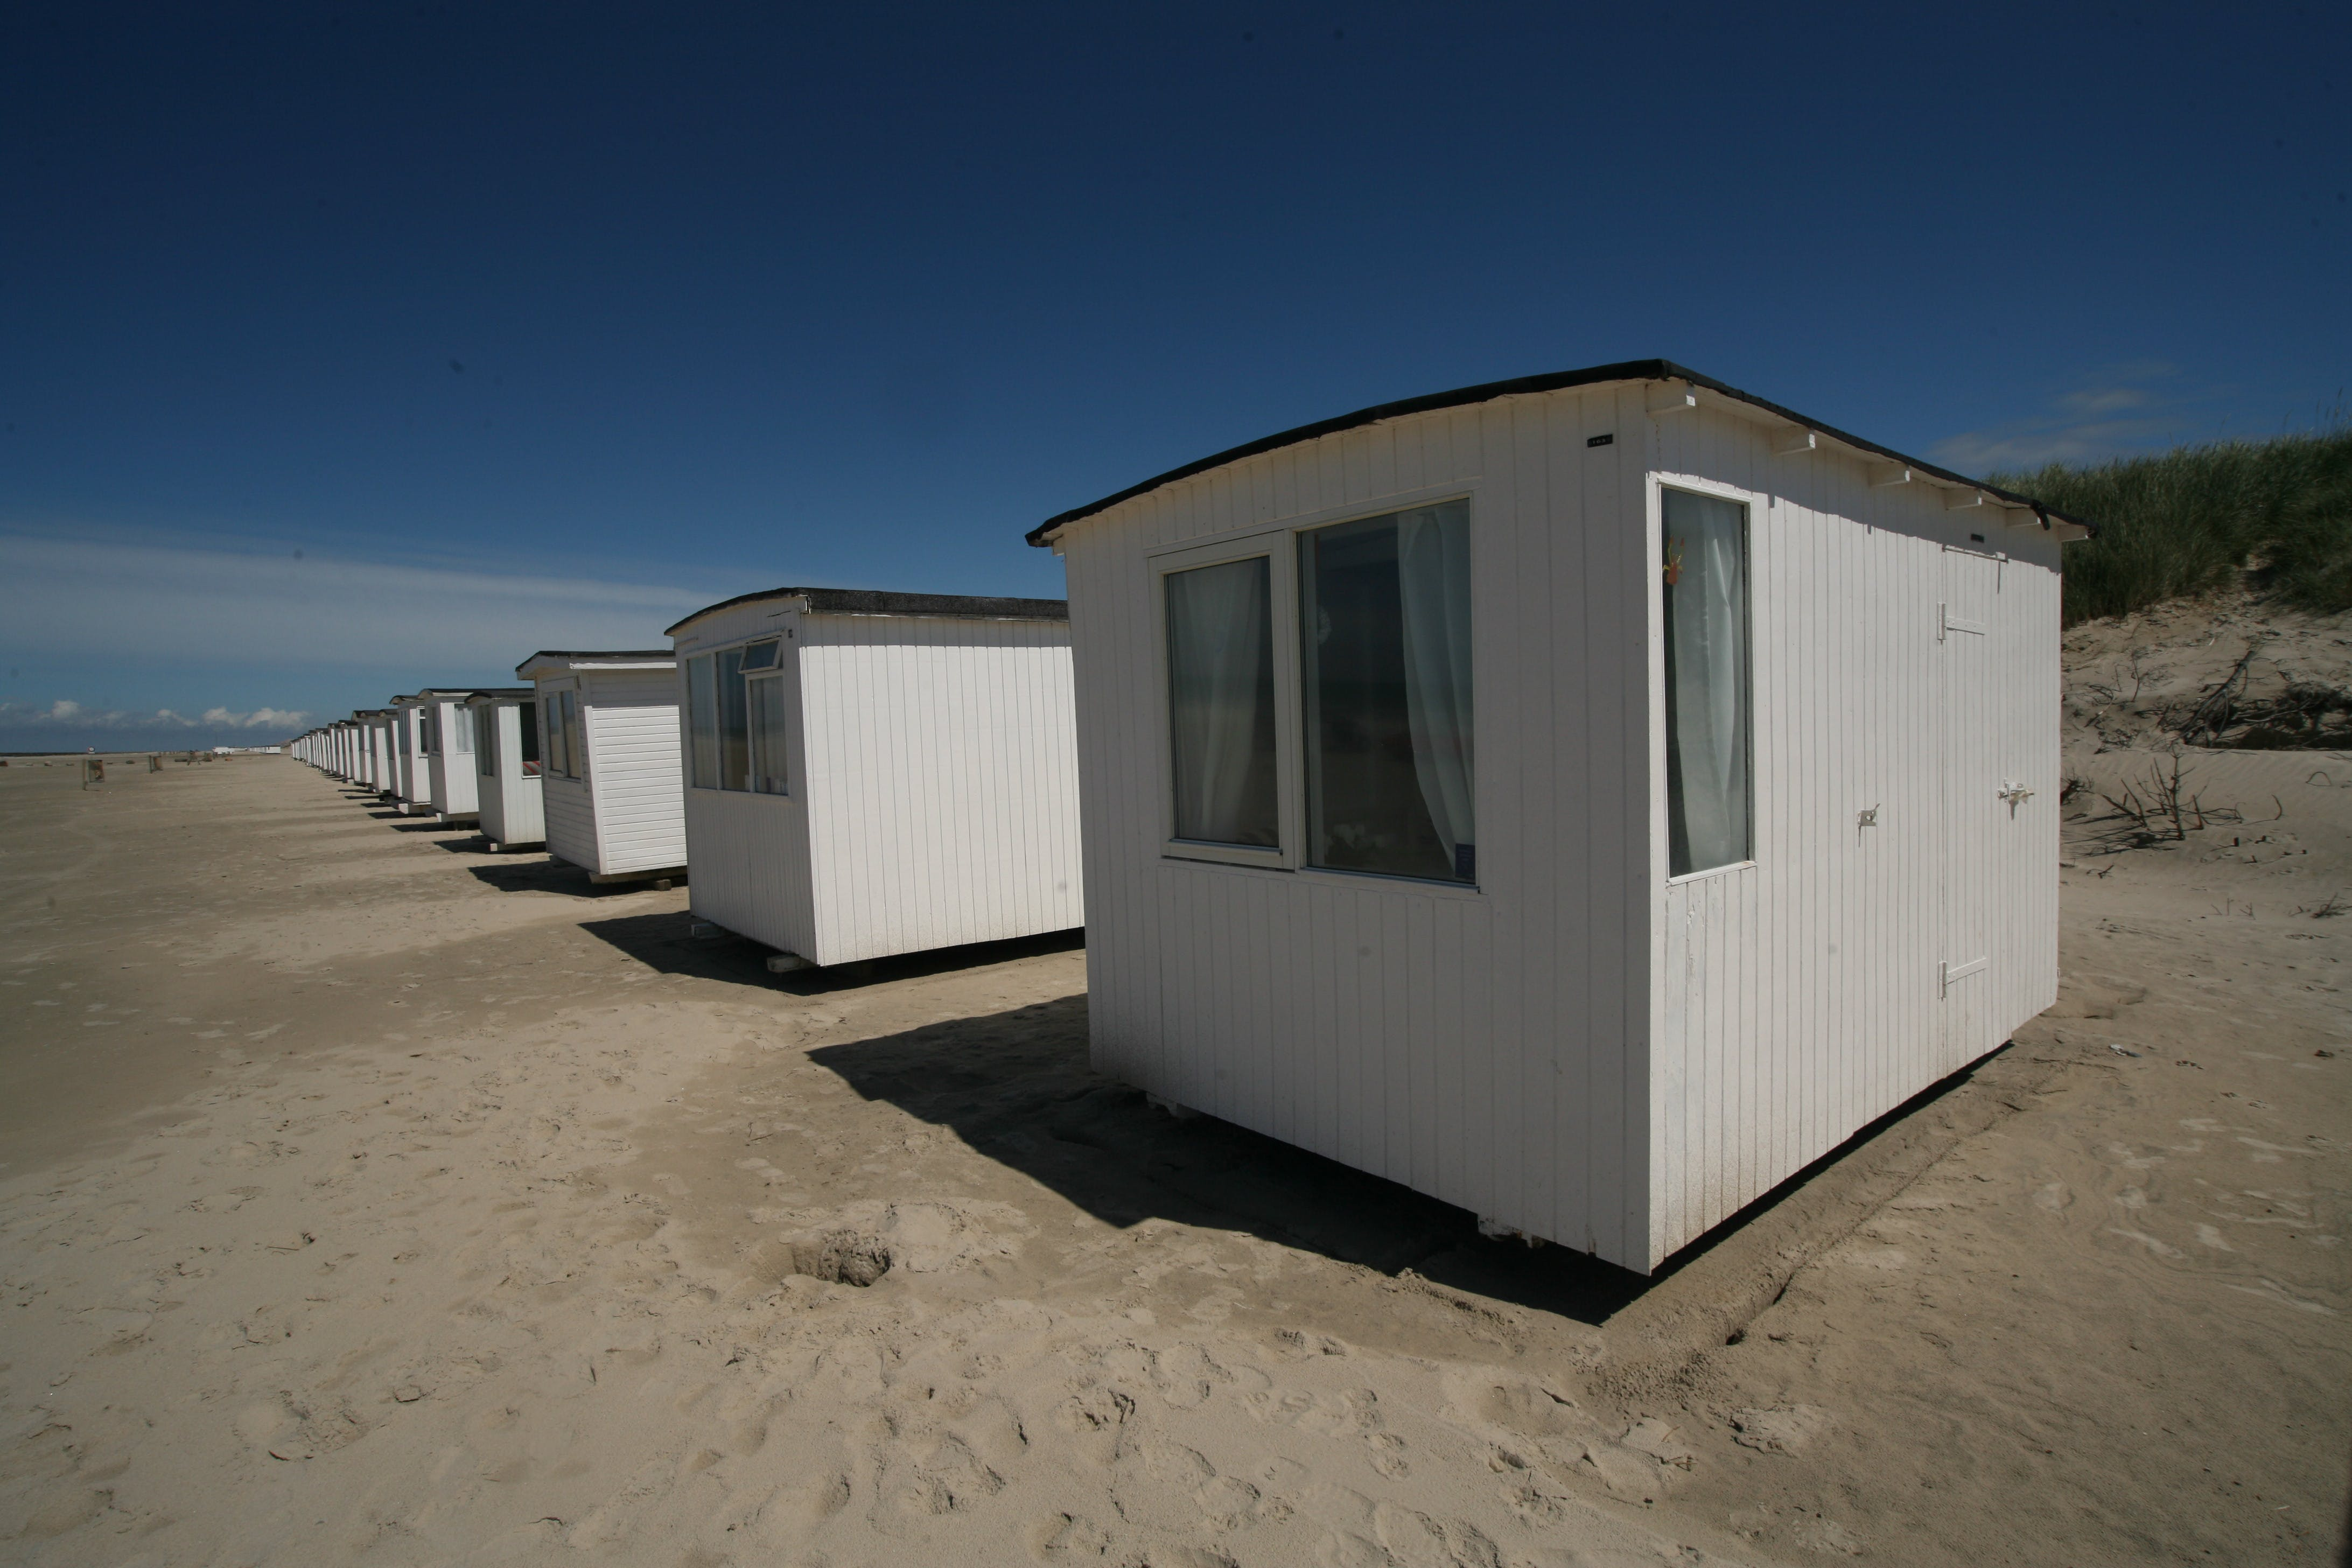 White Sheds on Gray Sands